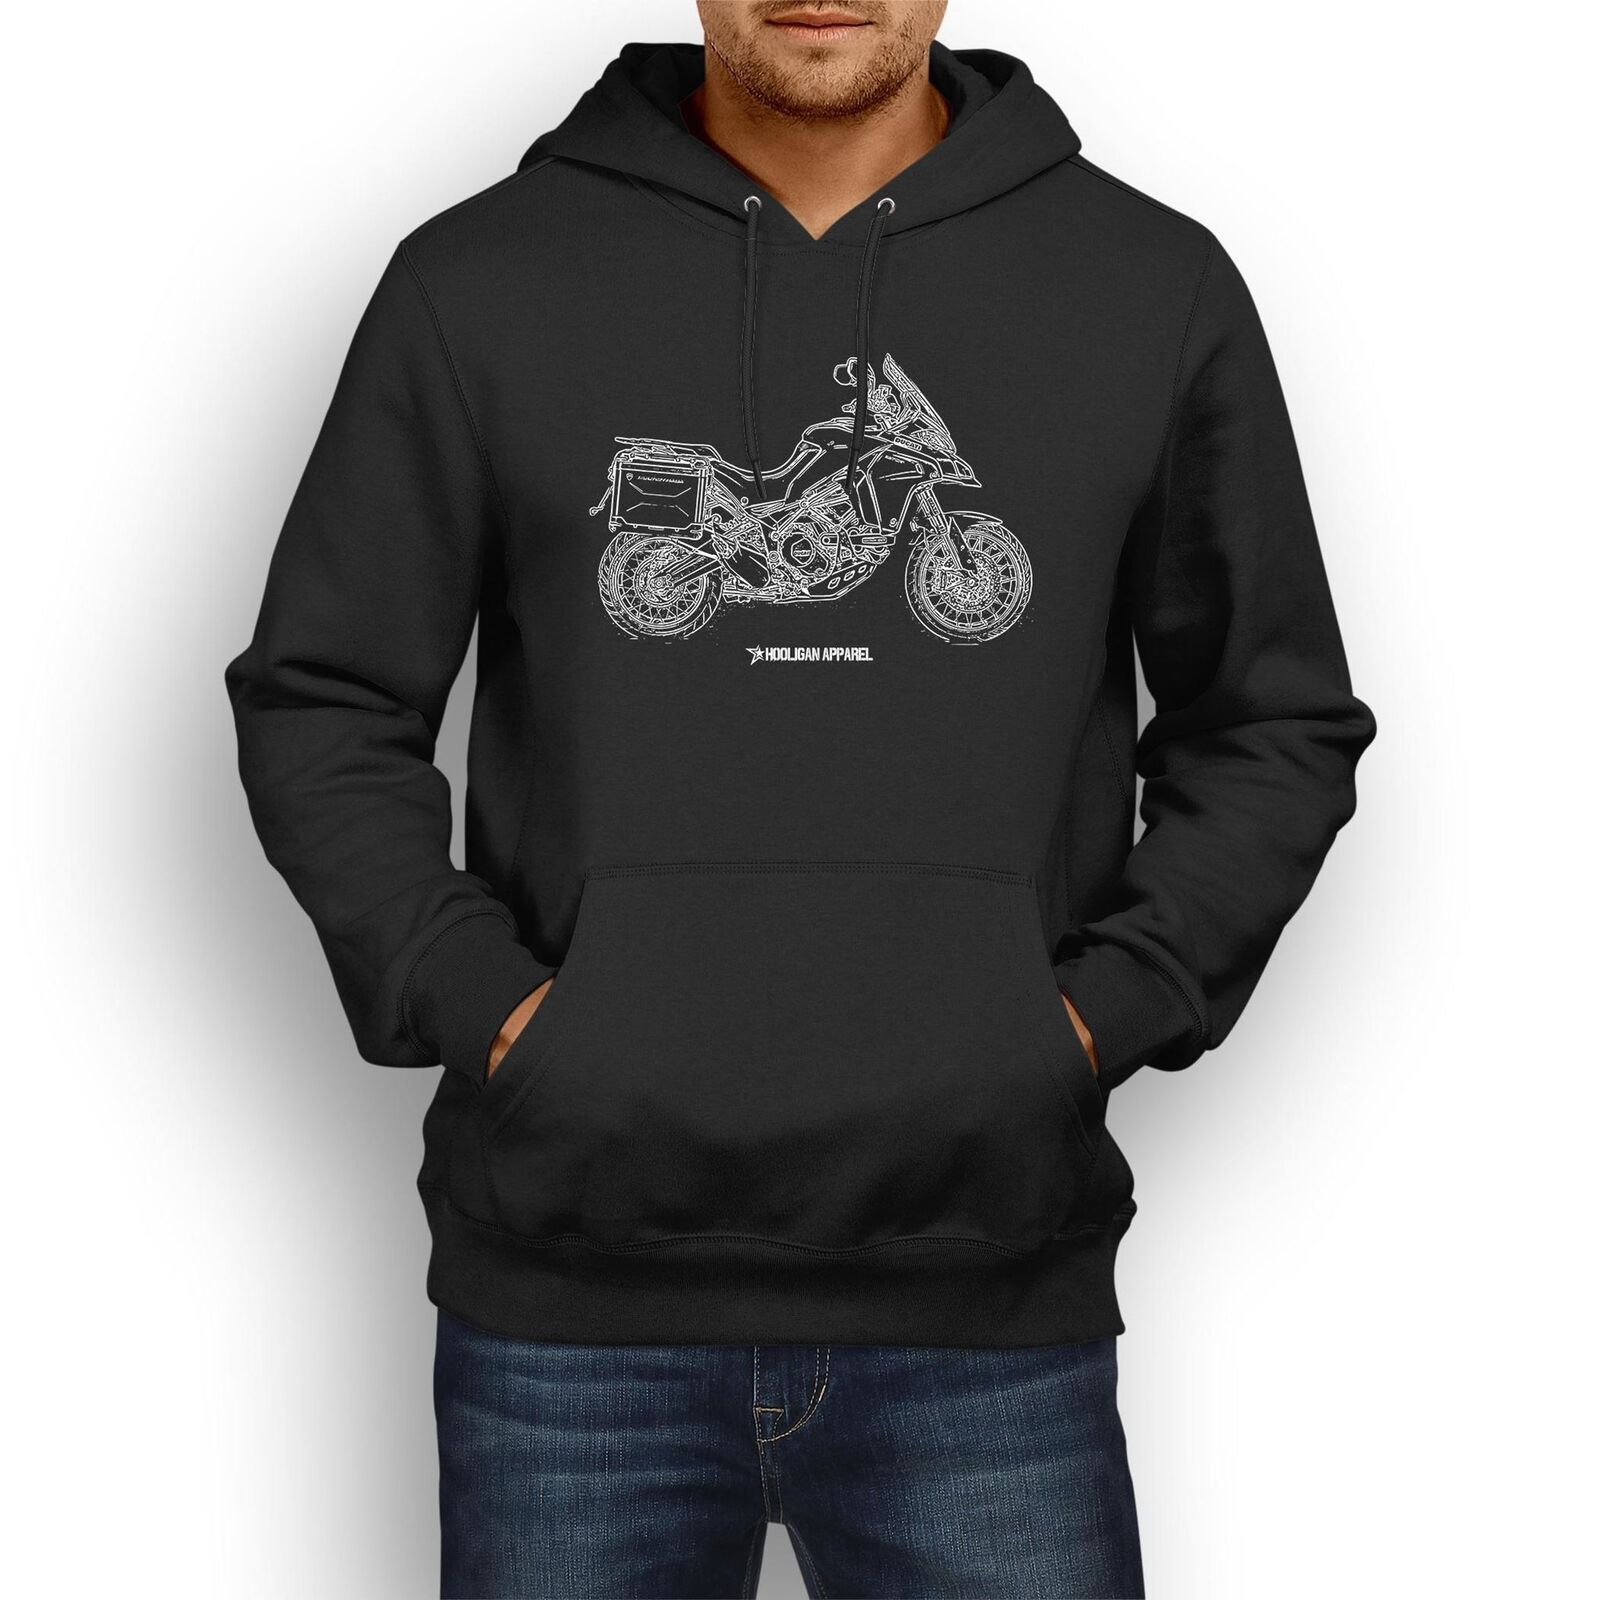 Ducati Multistrada 1200 Enduro 2017 InspiROT Motorcycle Art Men's Hoodie